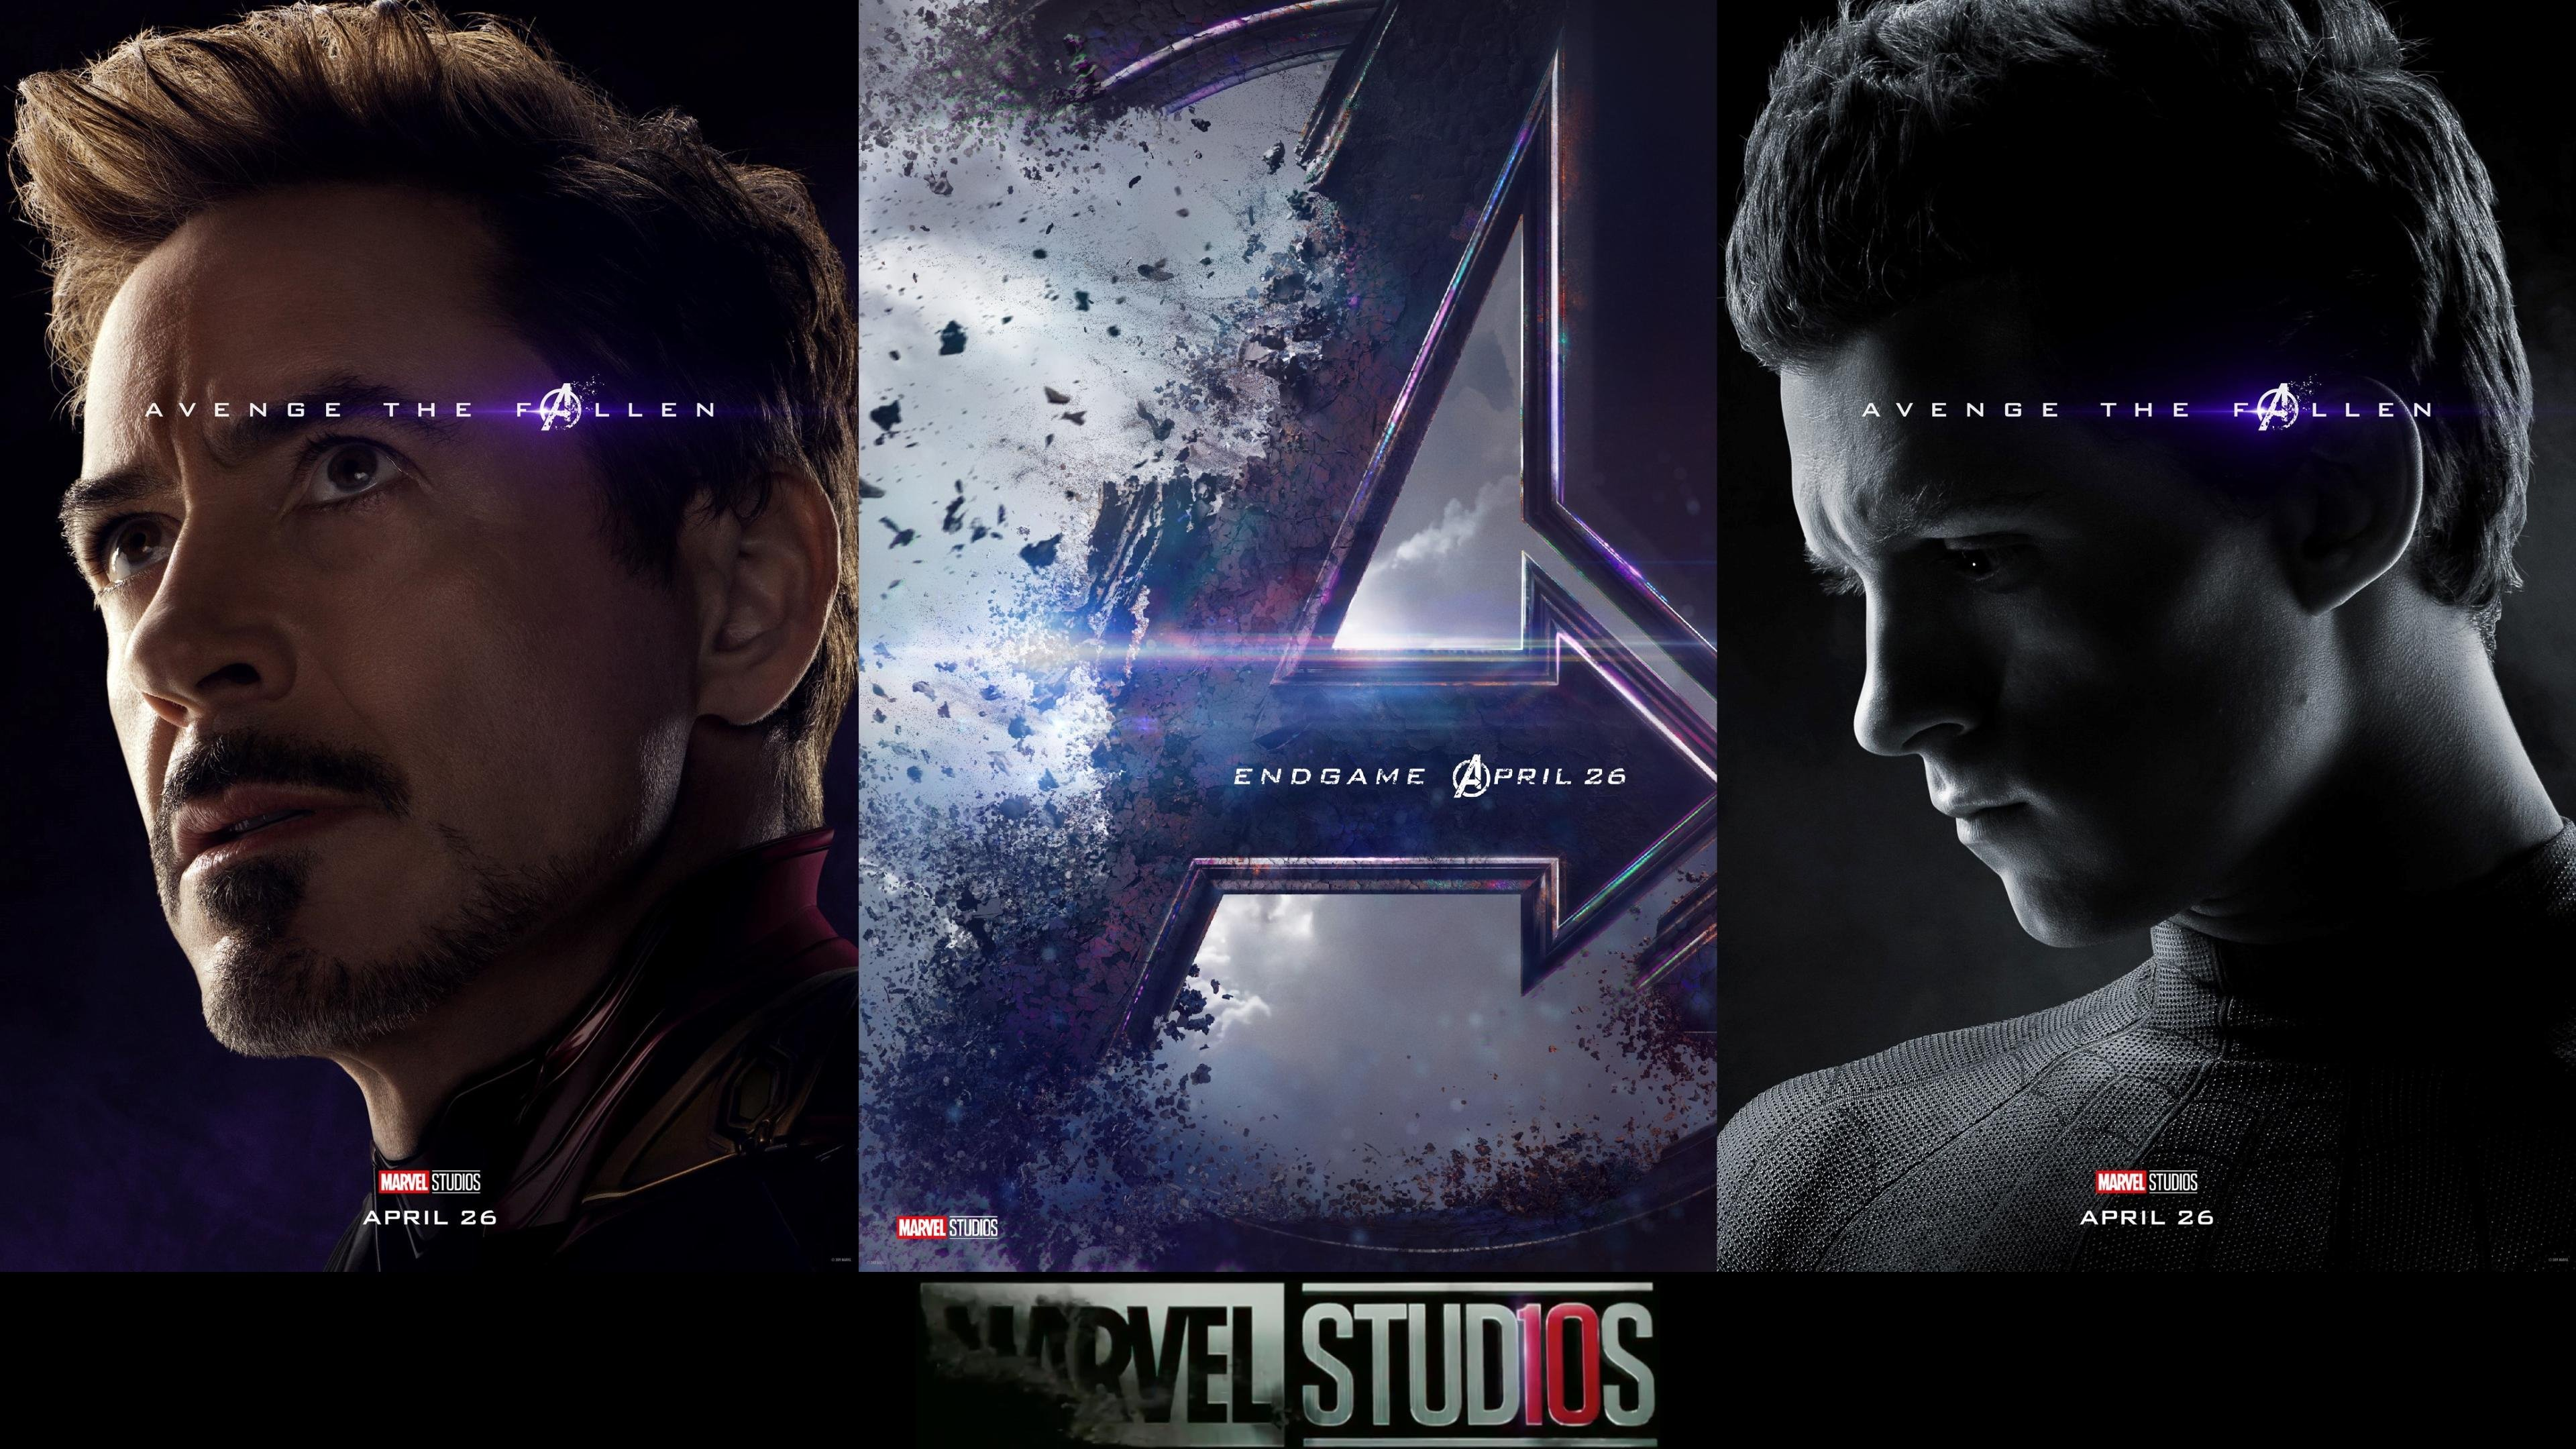 Avengers 4k Wallpapers For Your Desktop Or Mobile Screen Free And Easy To Download